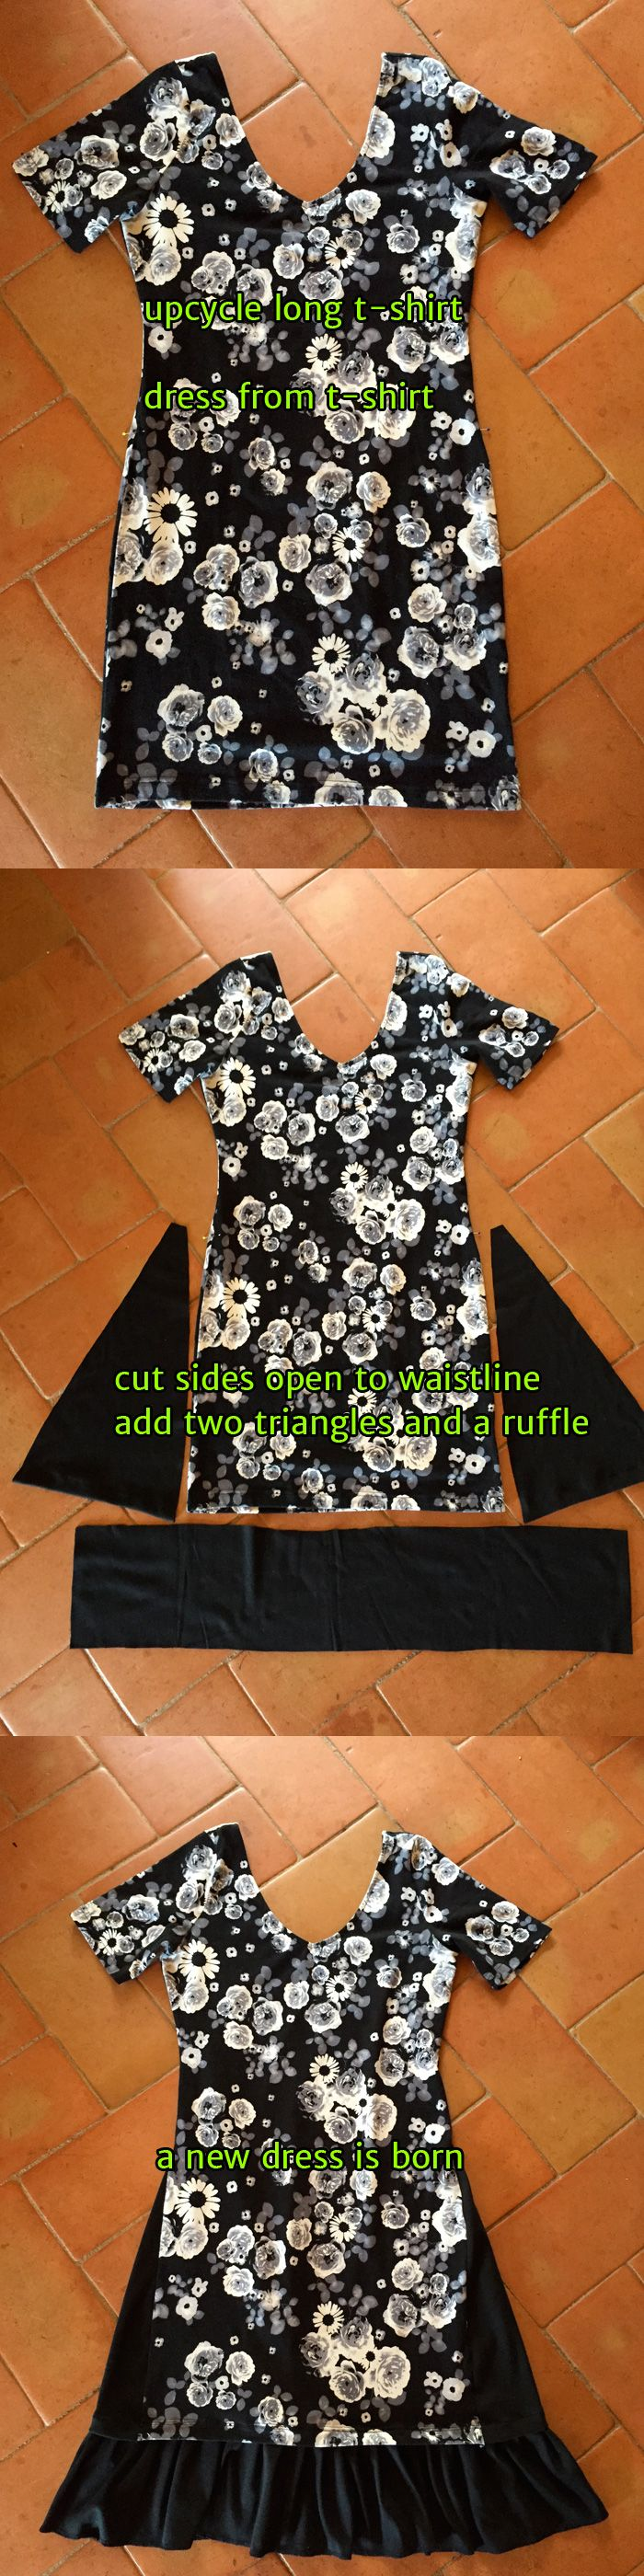 Upcycle t-shirt / dress out of t-shirt: Loved the print of